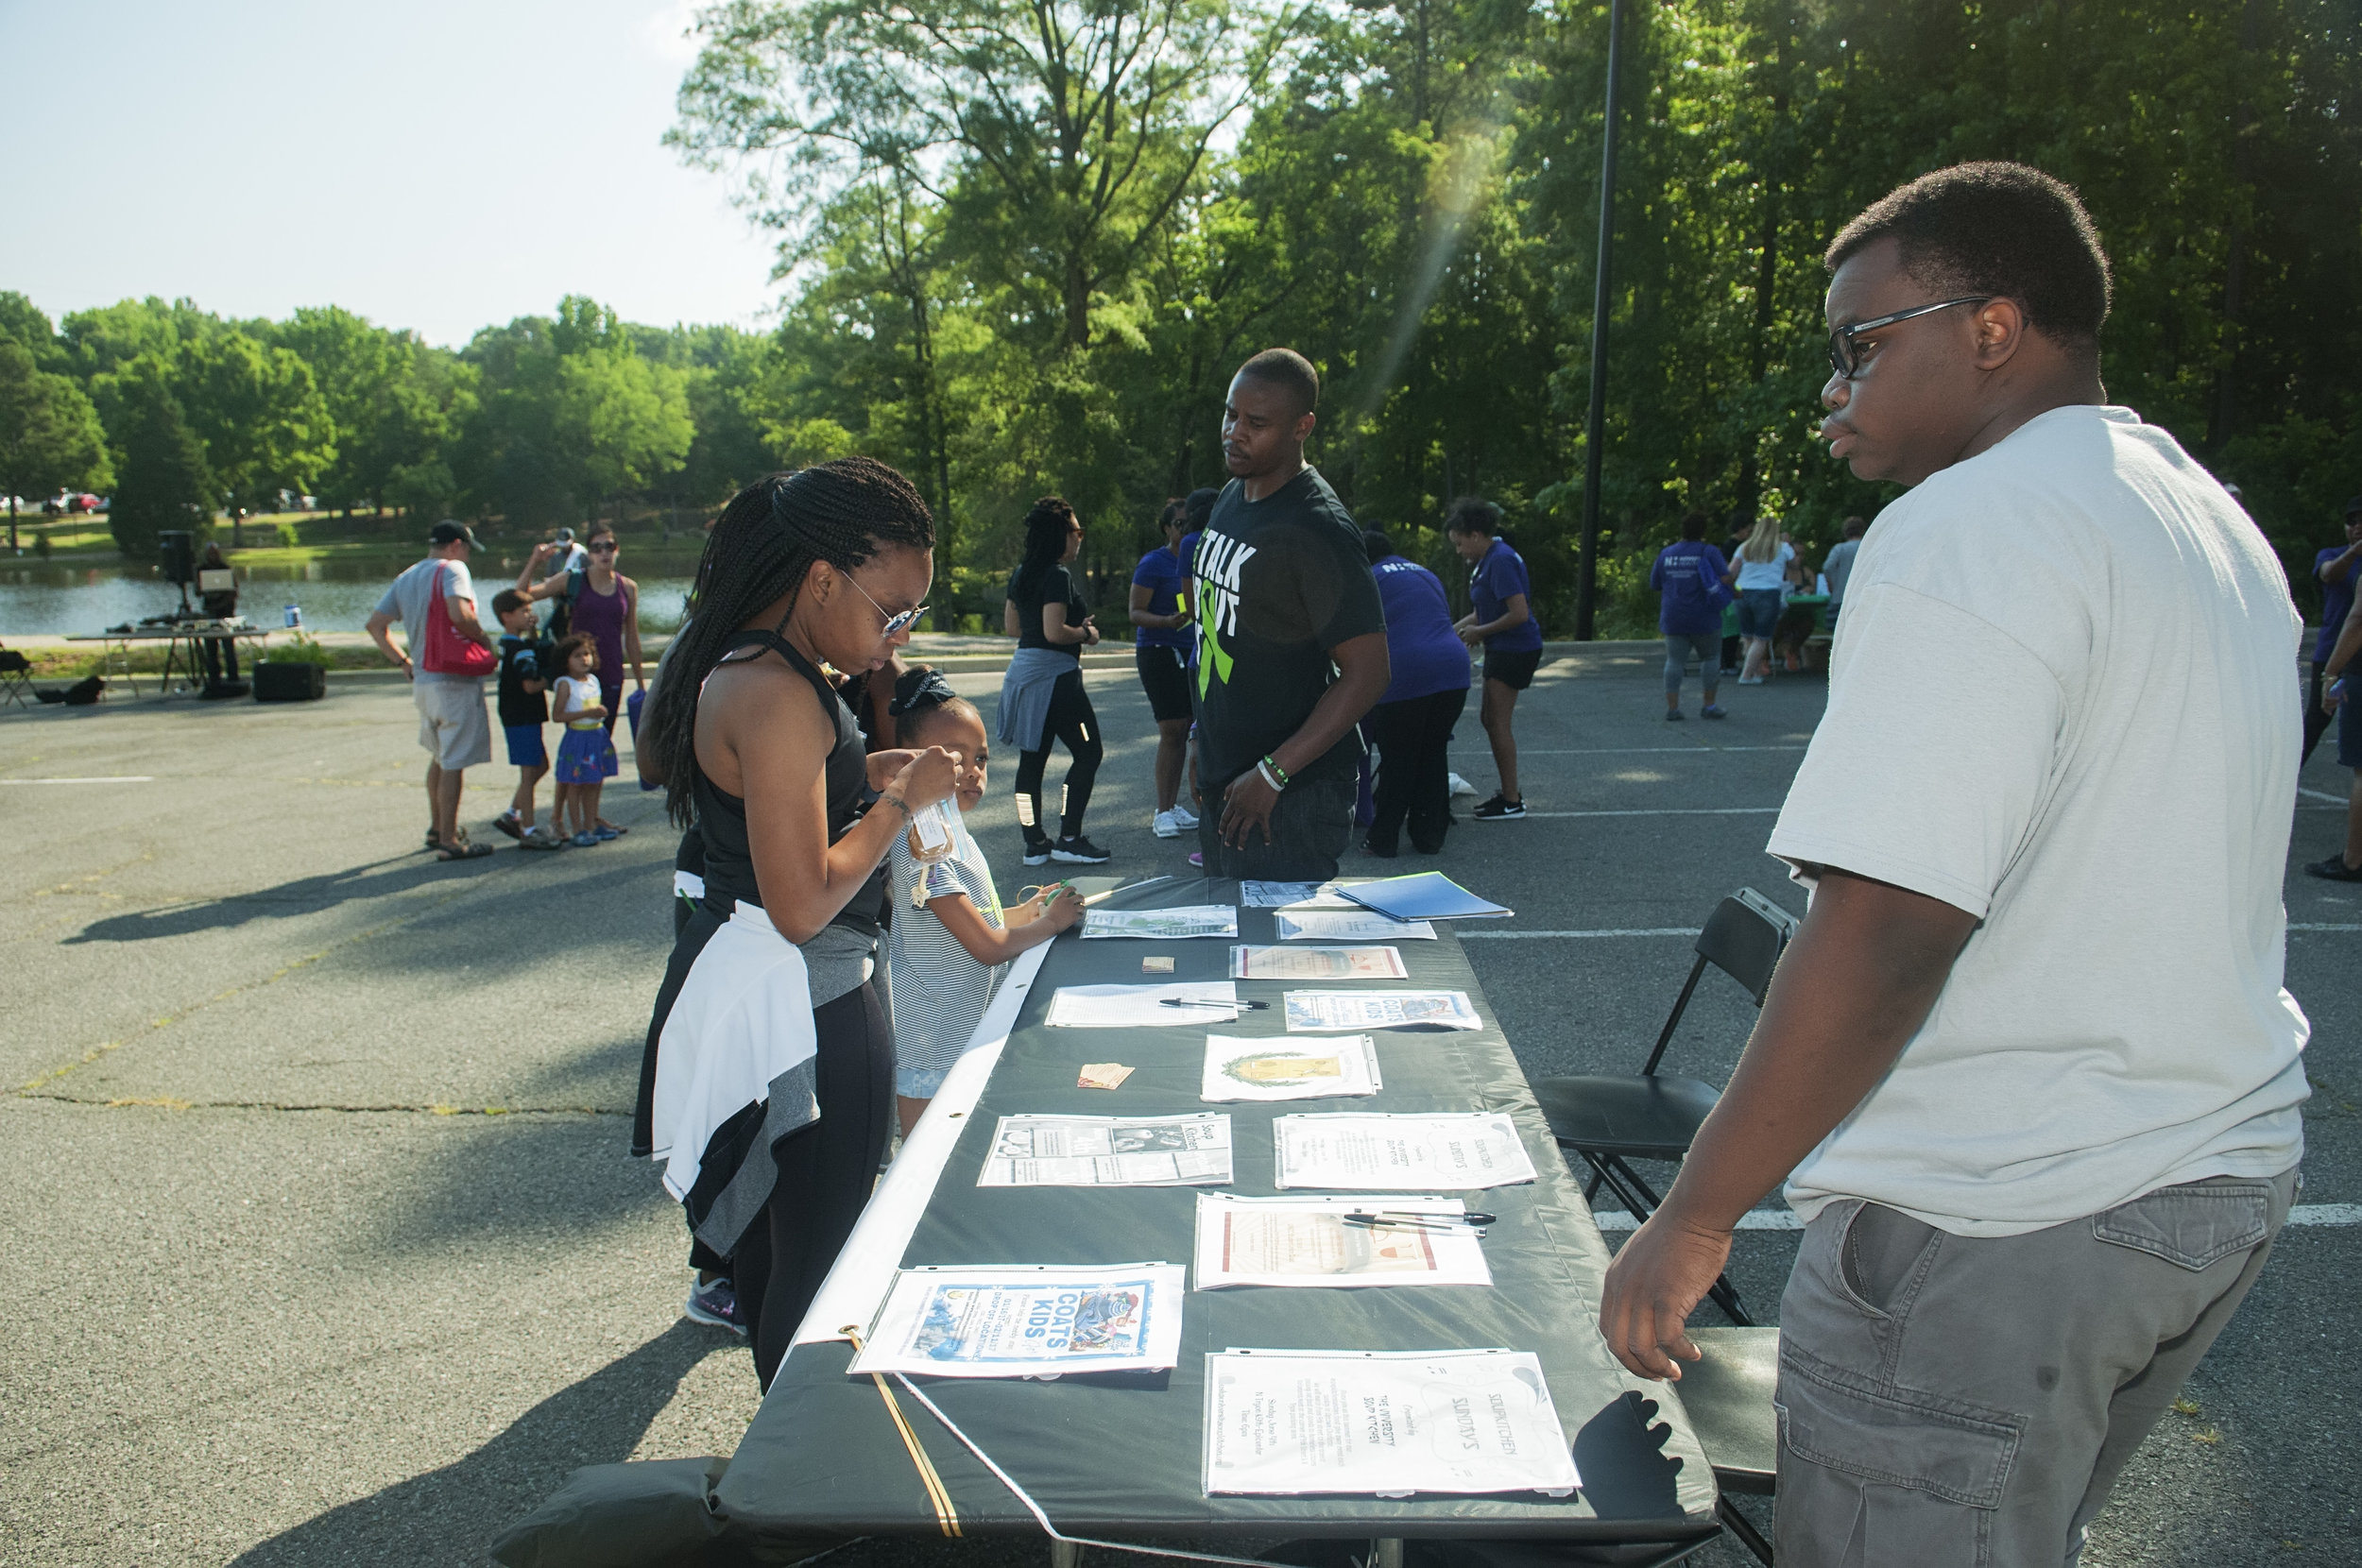 2nd Annual Let's Talk About It Mental Health Awareness Walk @ Park Rd Park 5-20-17 by Jon Strayhorn 017.jpg